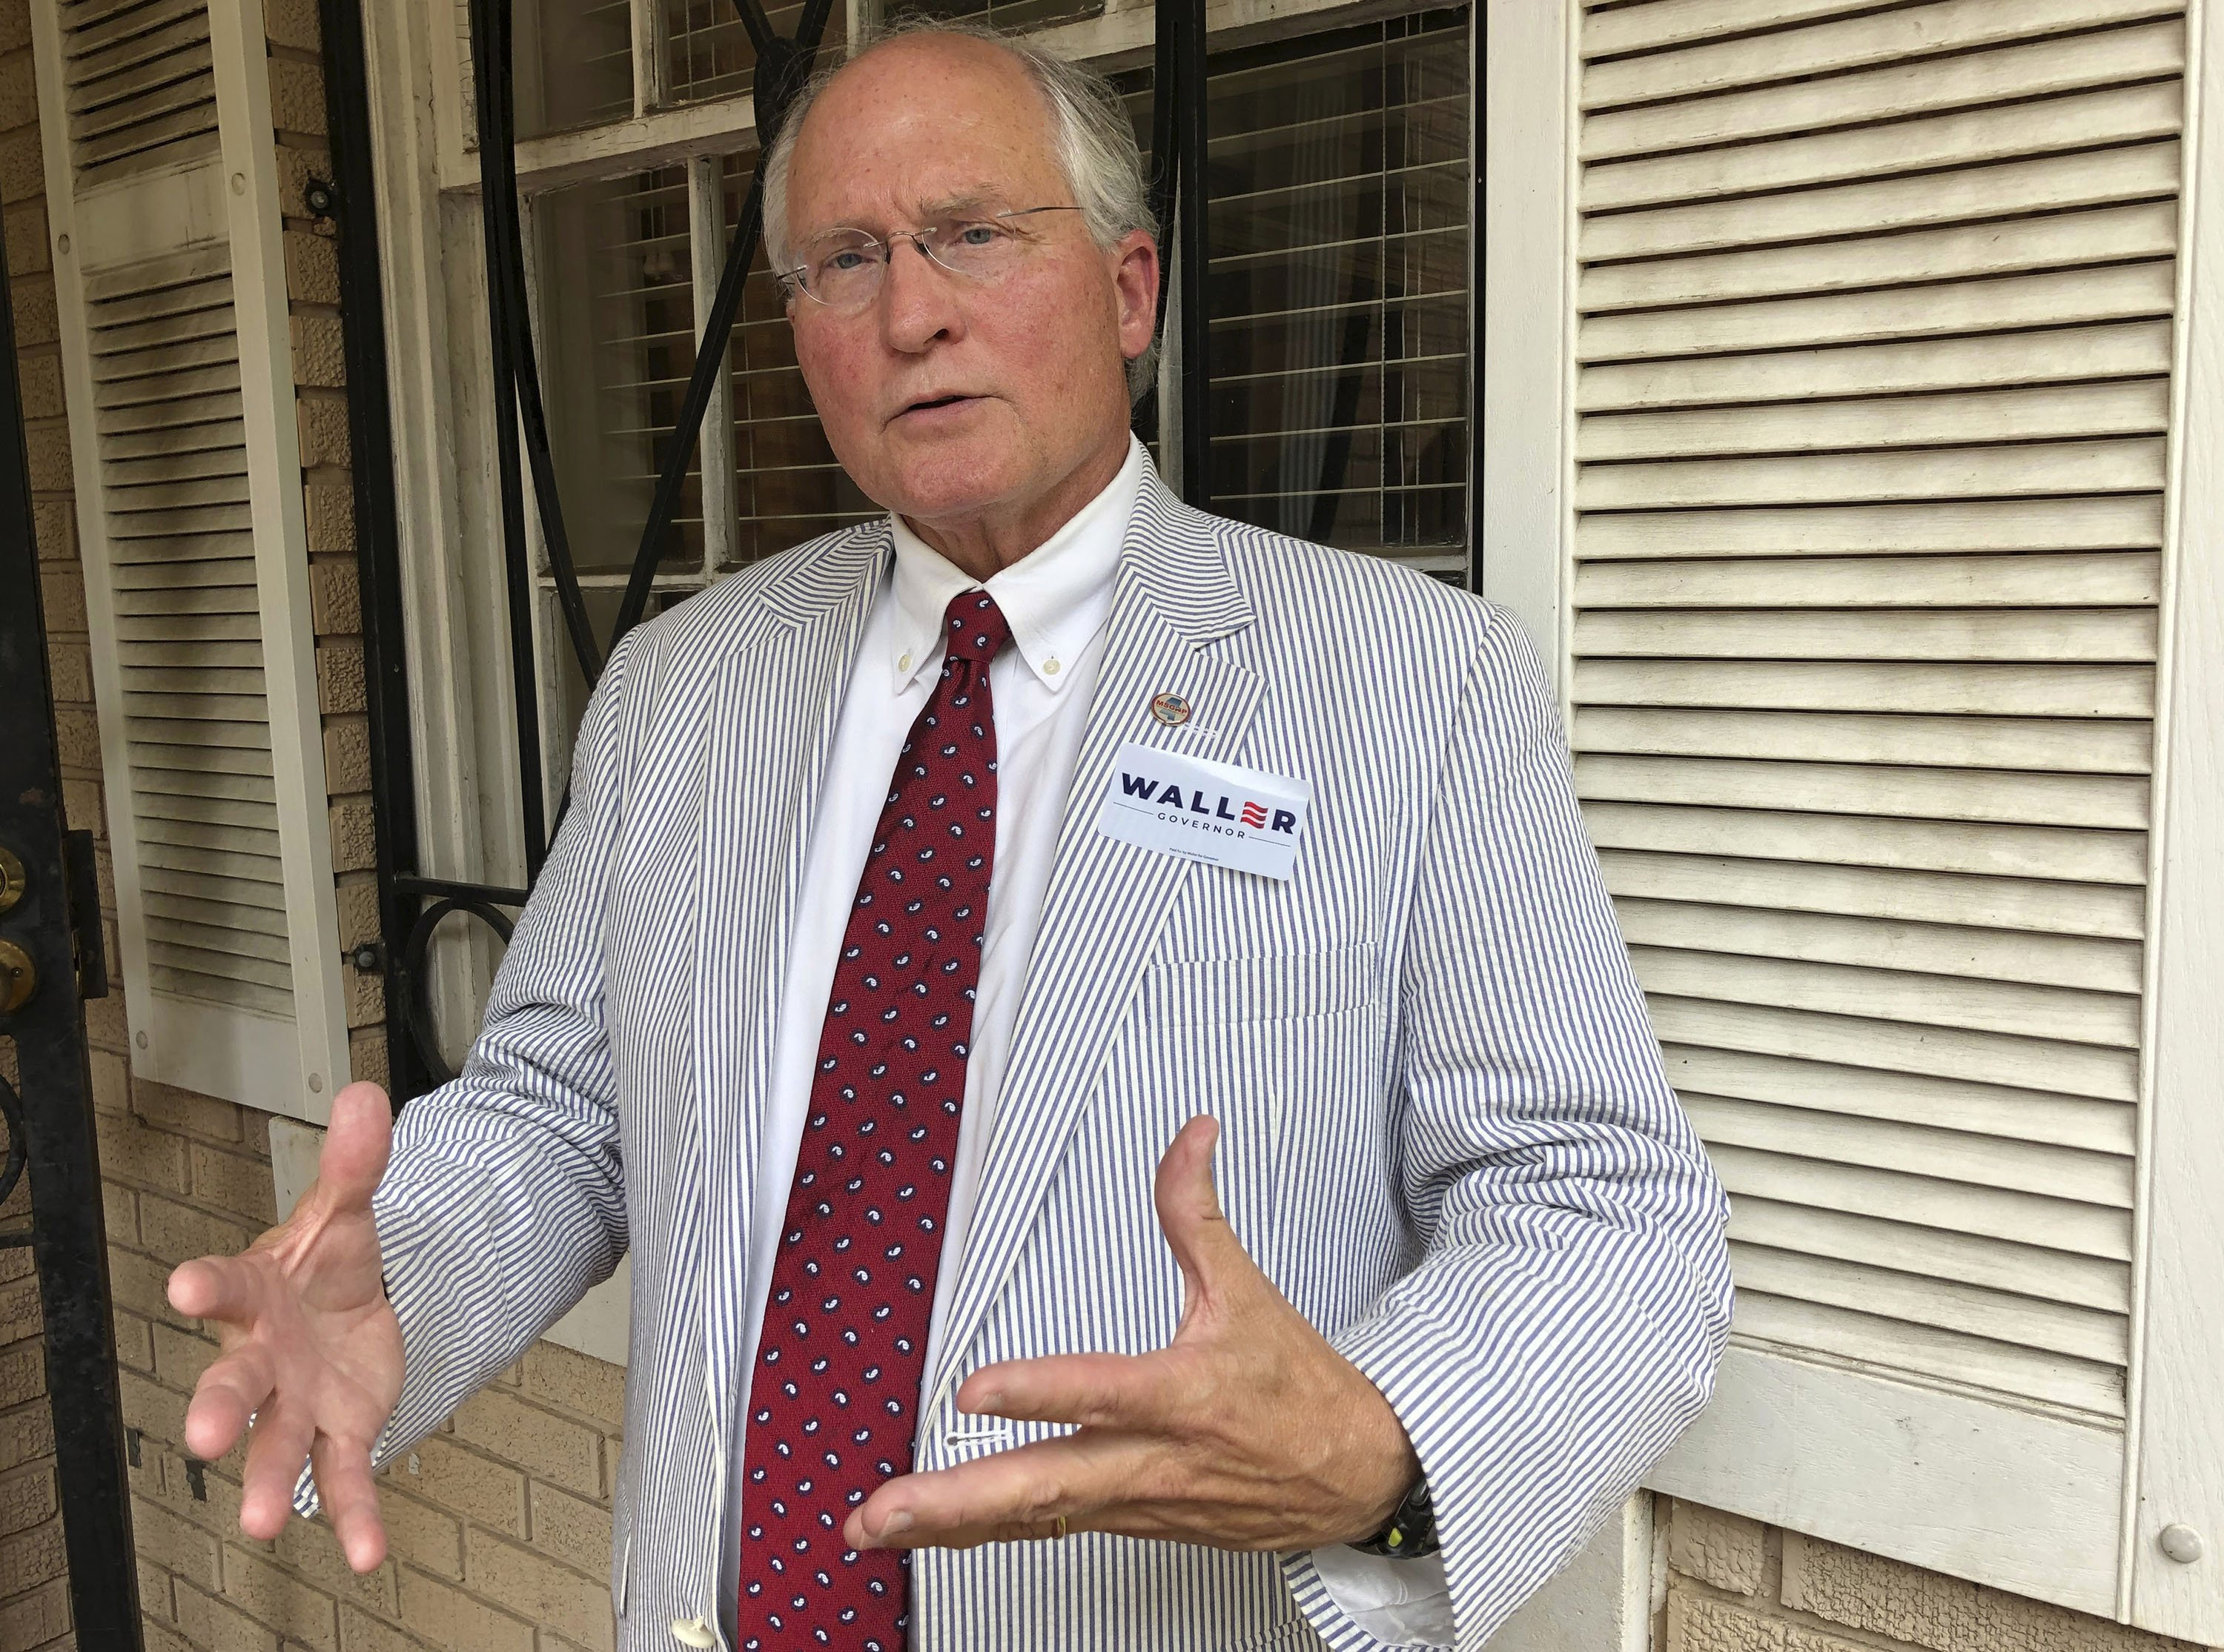 Second Mississippi gubernatorial candidate says he will not be alone with a woman who is not his wife